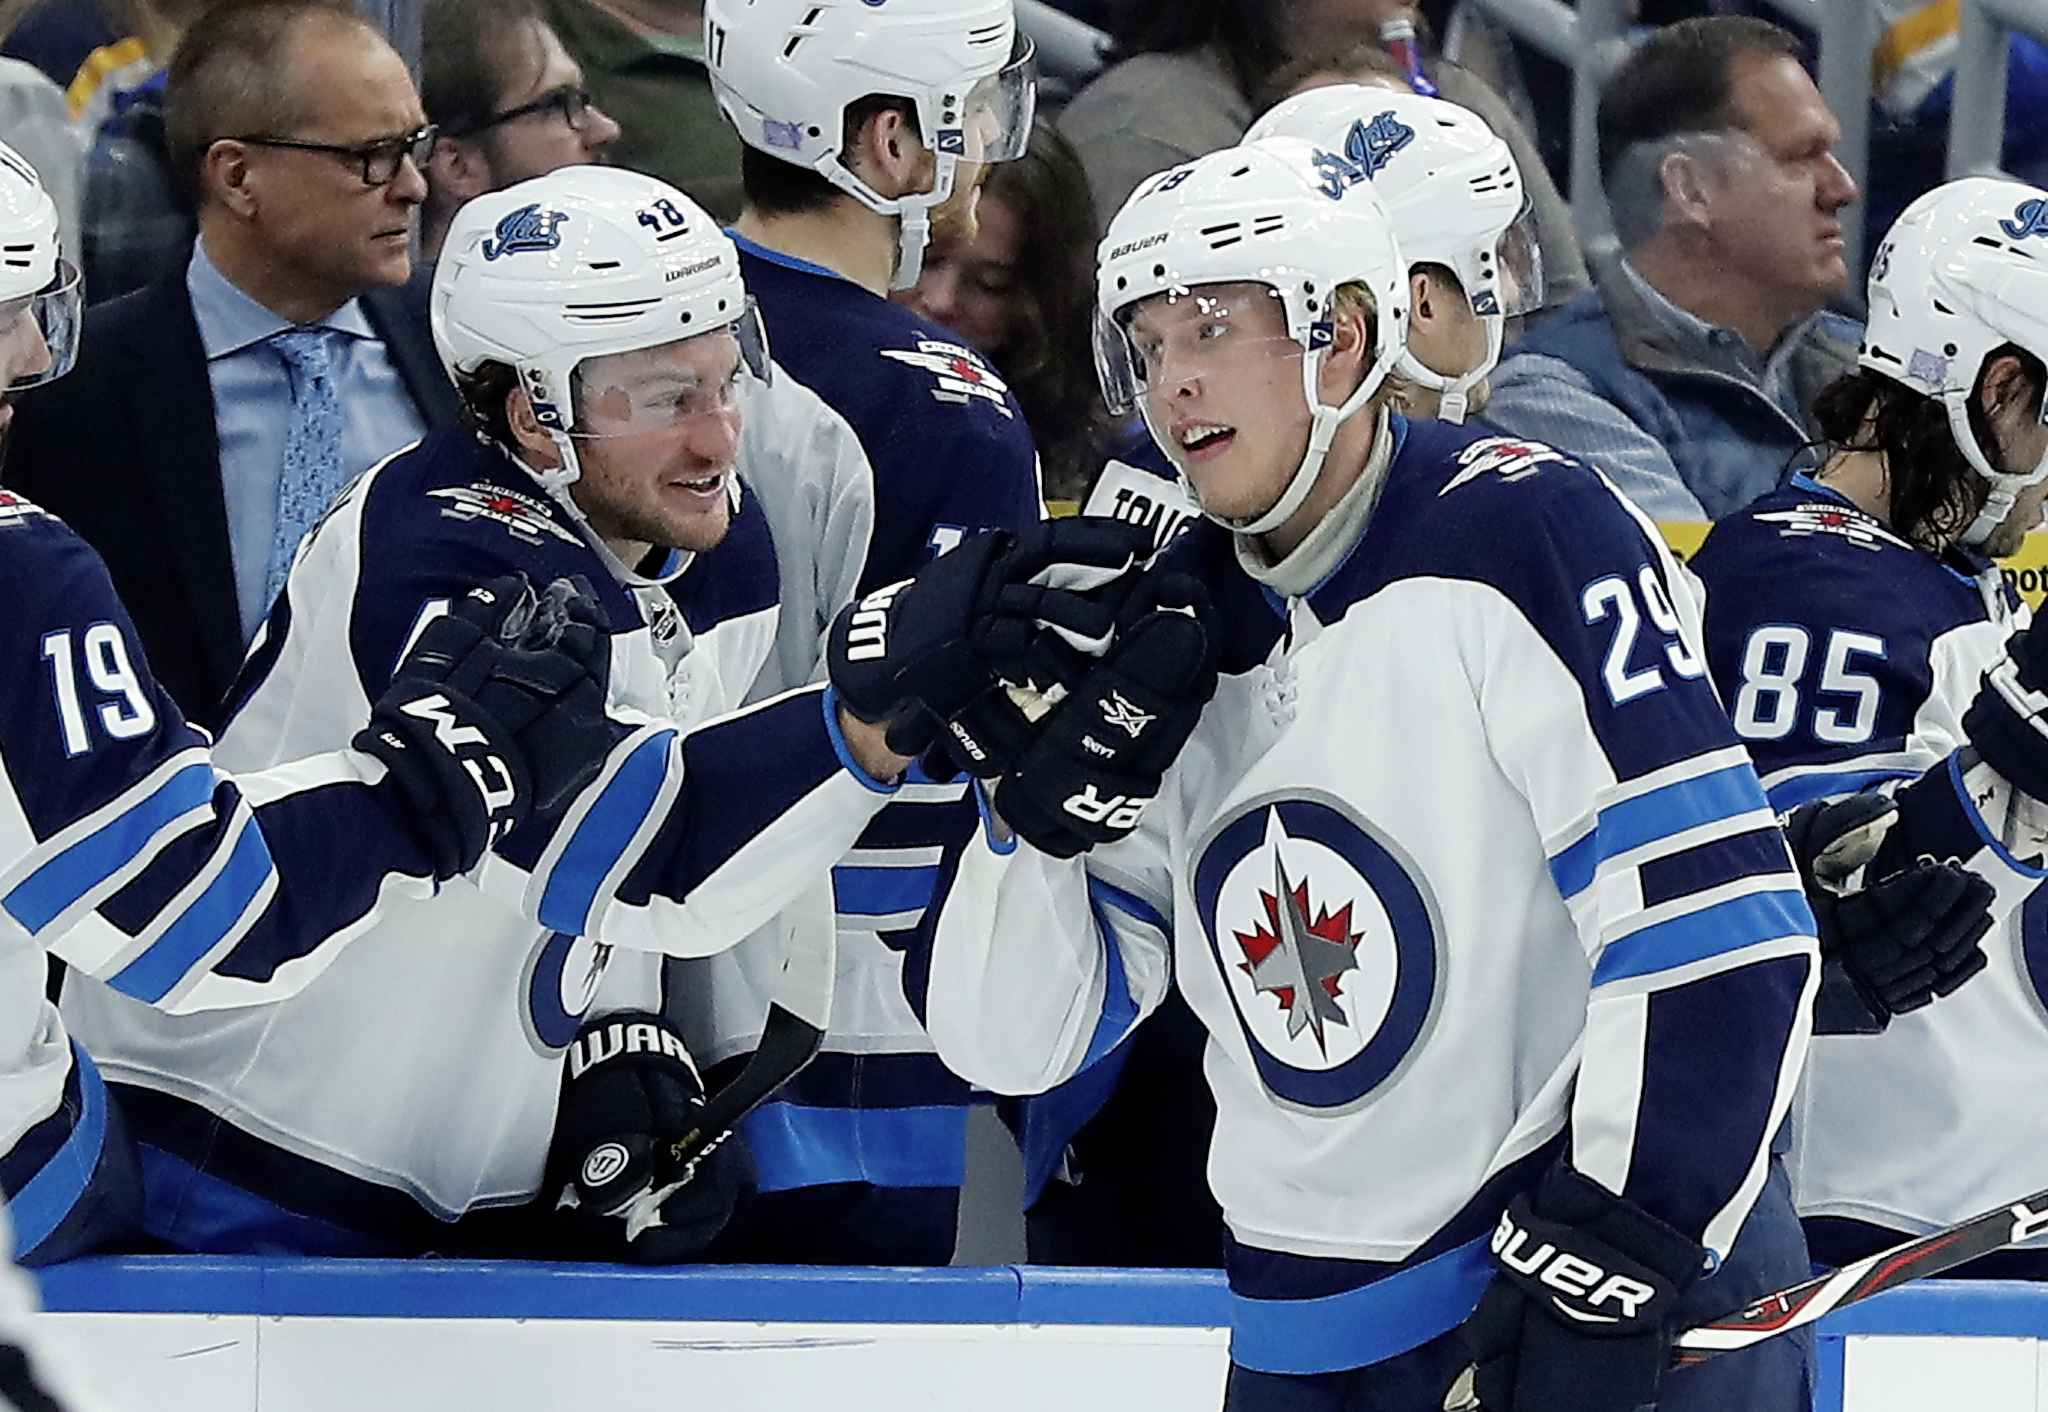 historic five-goal night from laine lifts jets to 8-4 win over blues